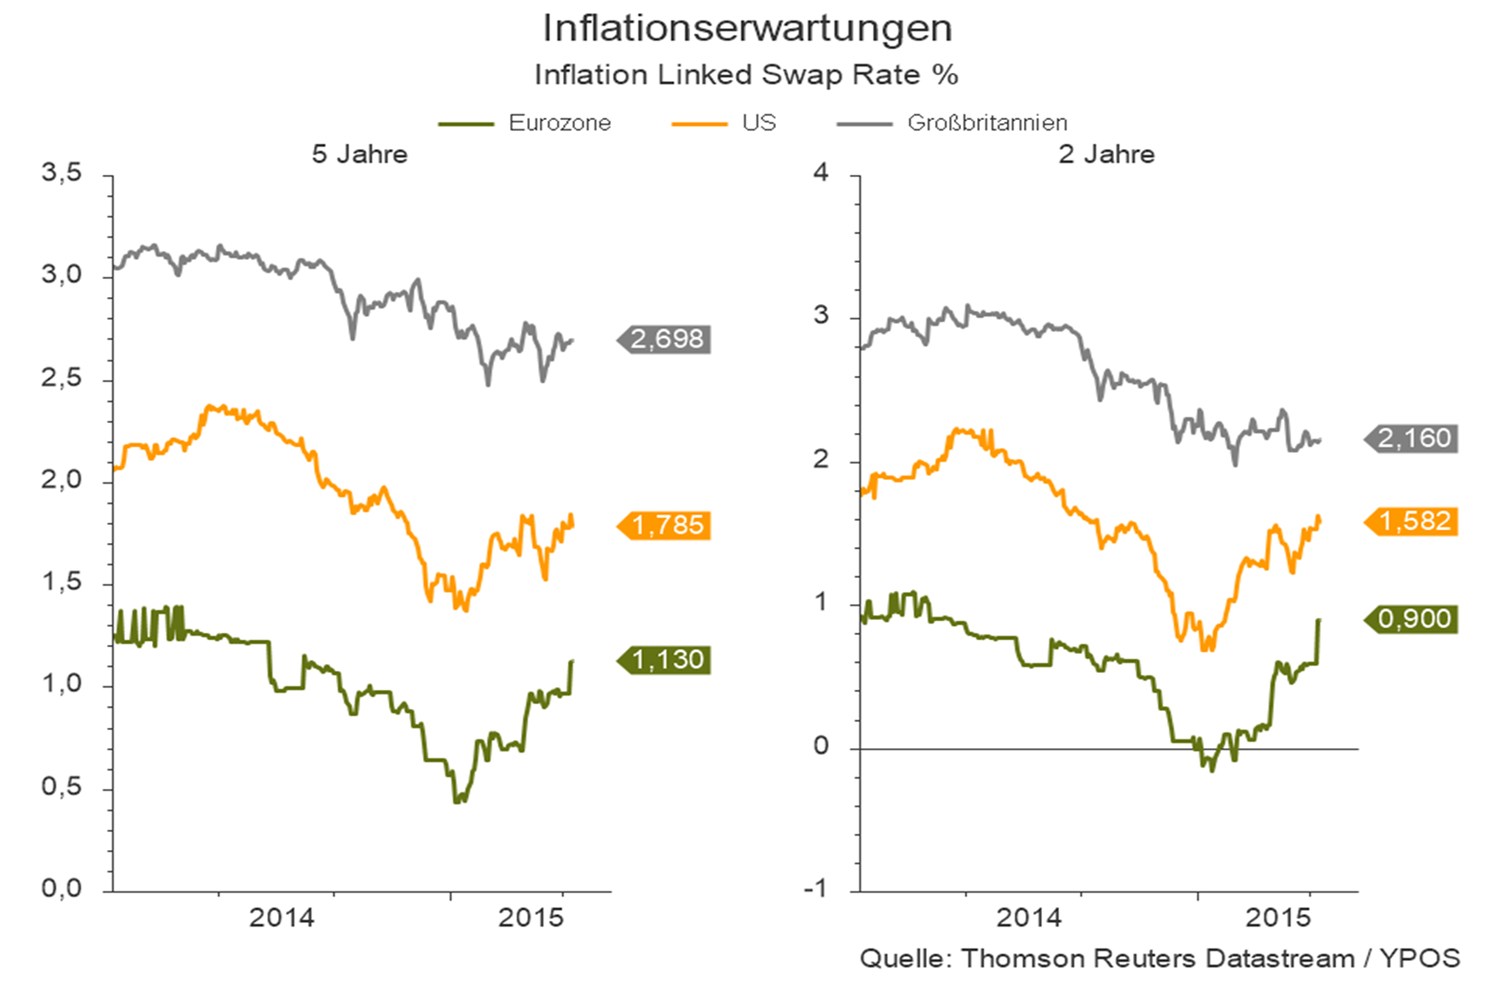 Inflationserwartungen-4-2015